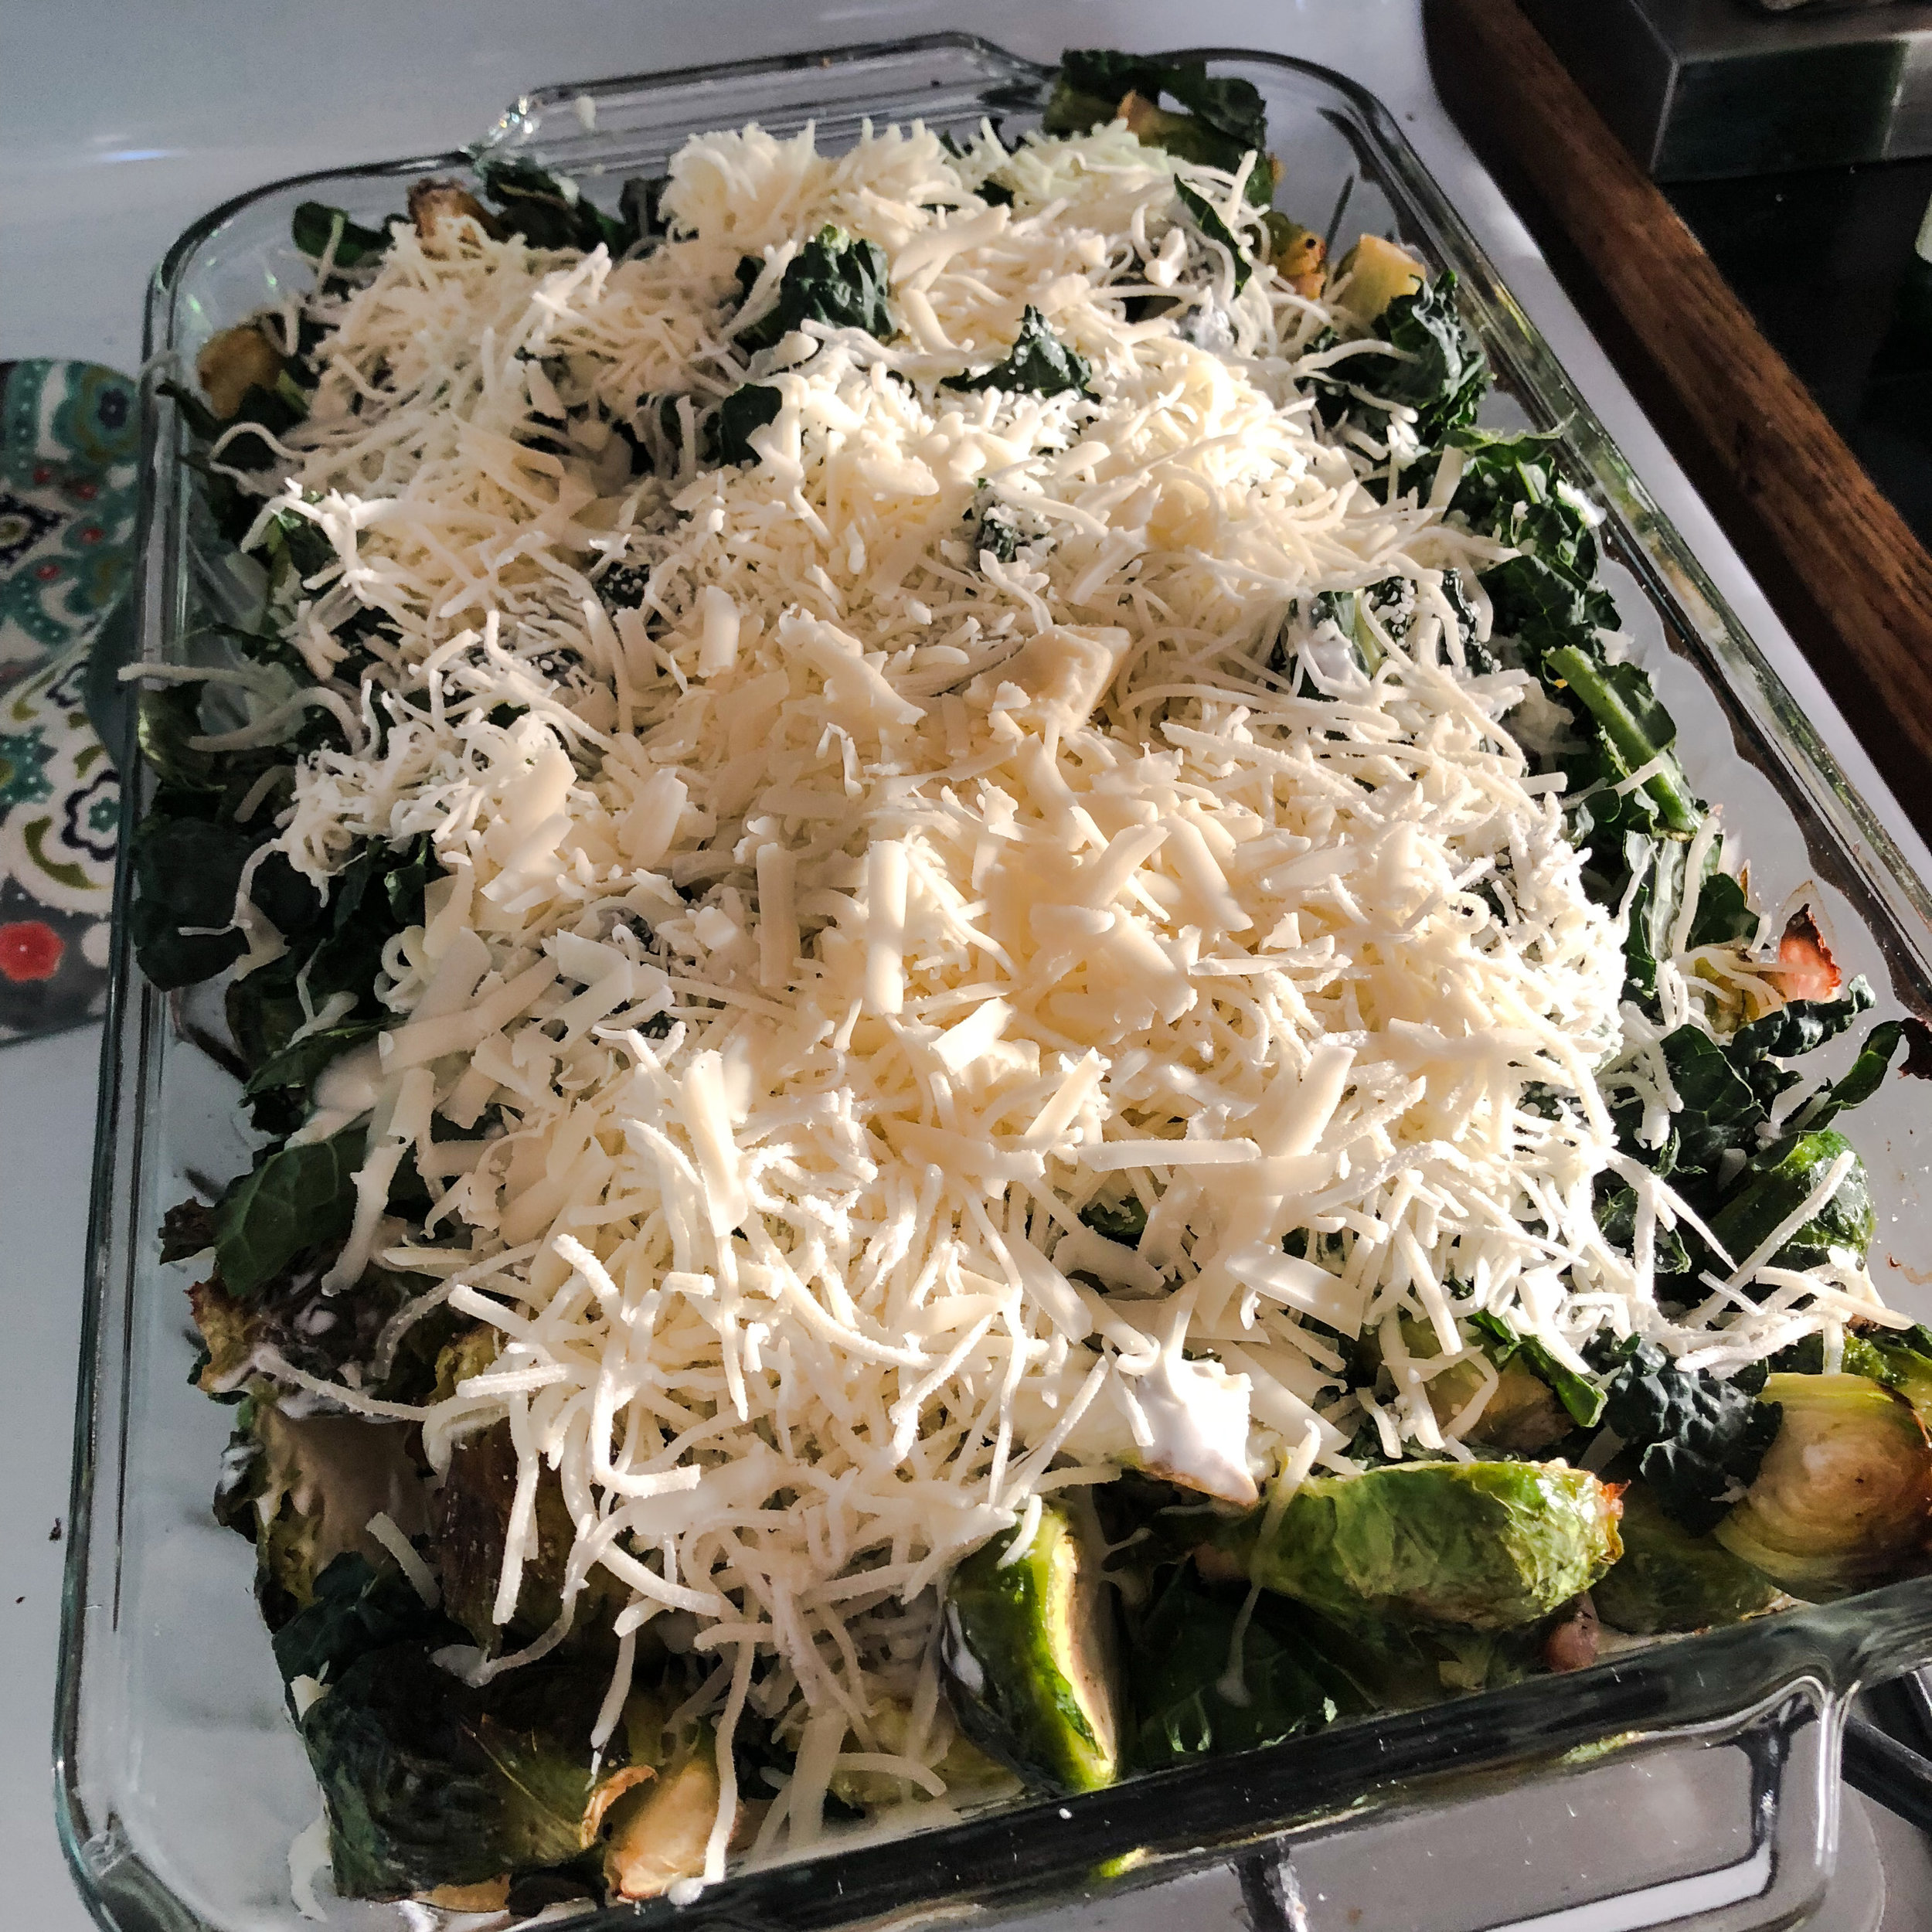 On top of kale add 1 1/2 cups of heavy whipping cream. Then add lots of shredded cheese! 1/2 cup of fontina cheese, 1 cup of mozzarella, 1/2 cup of gruyere.